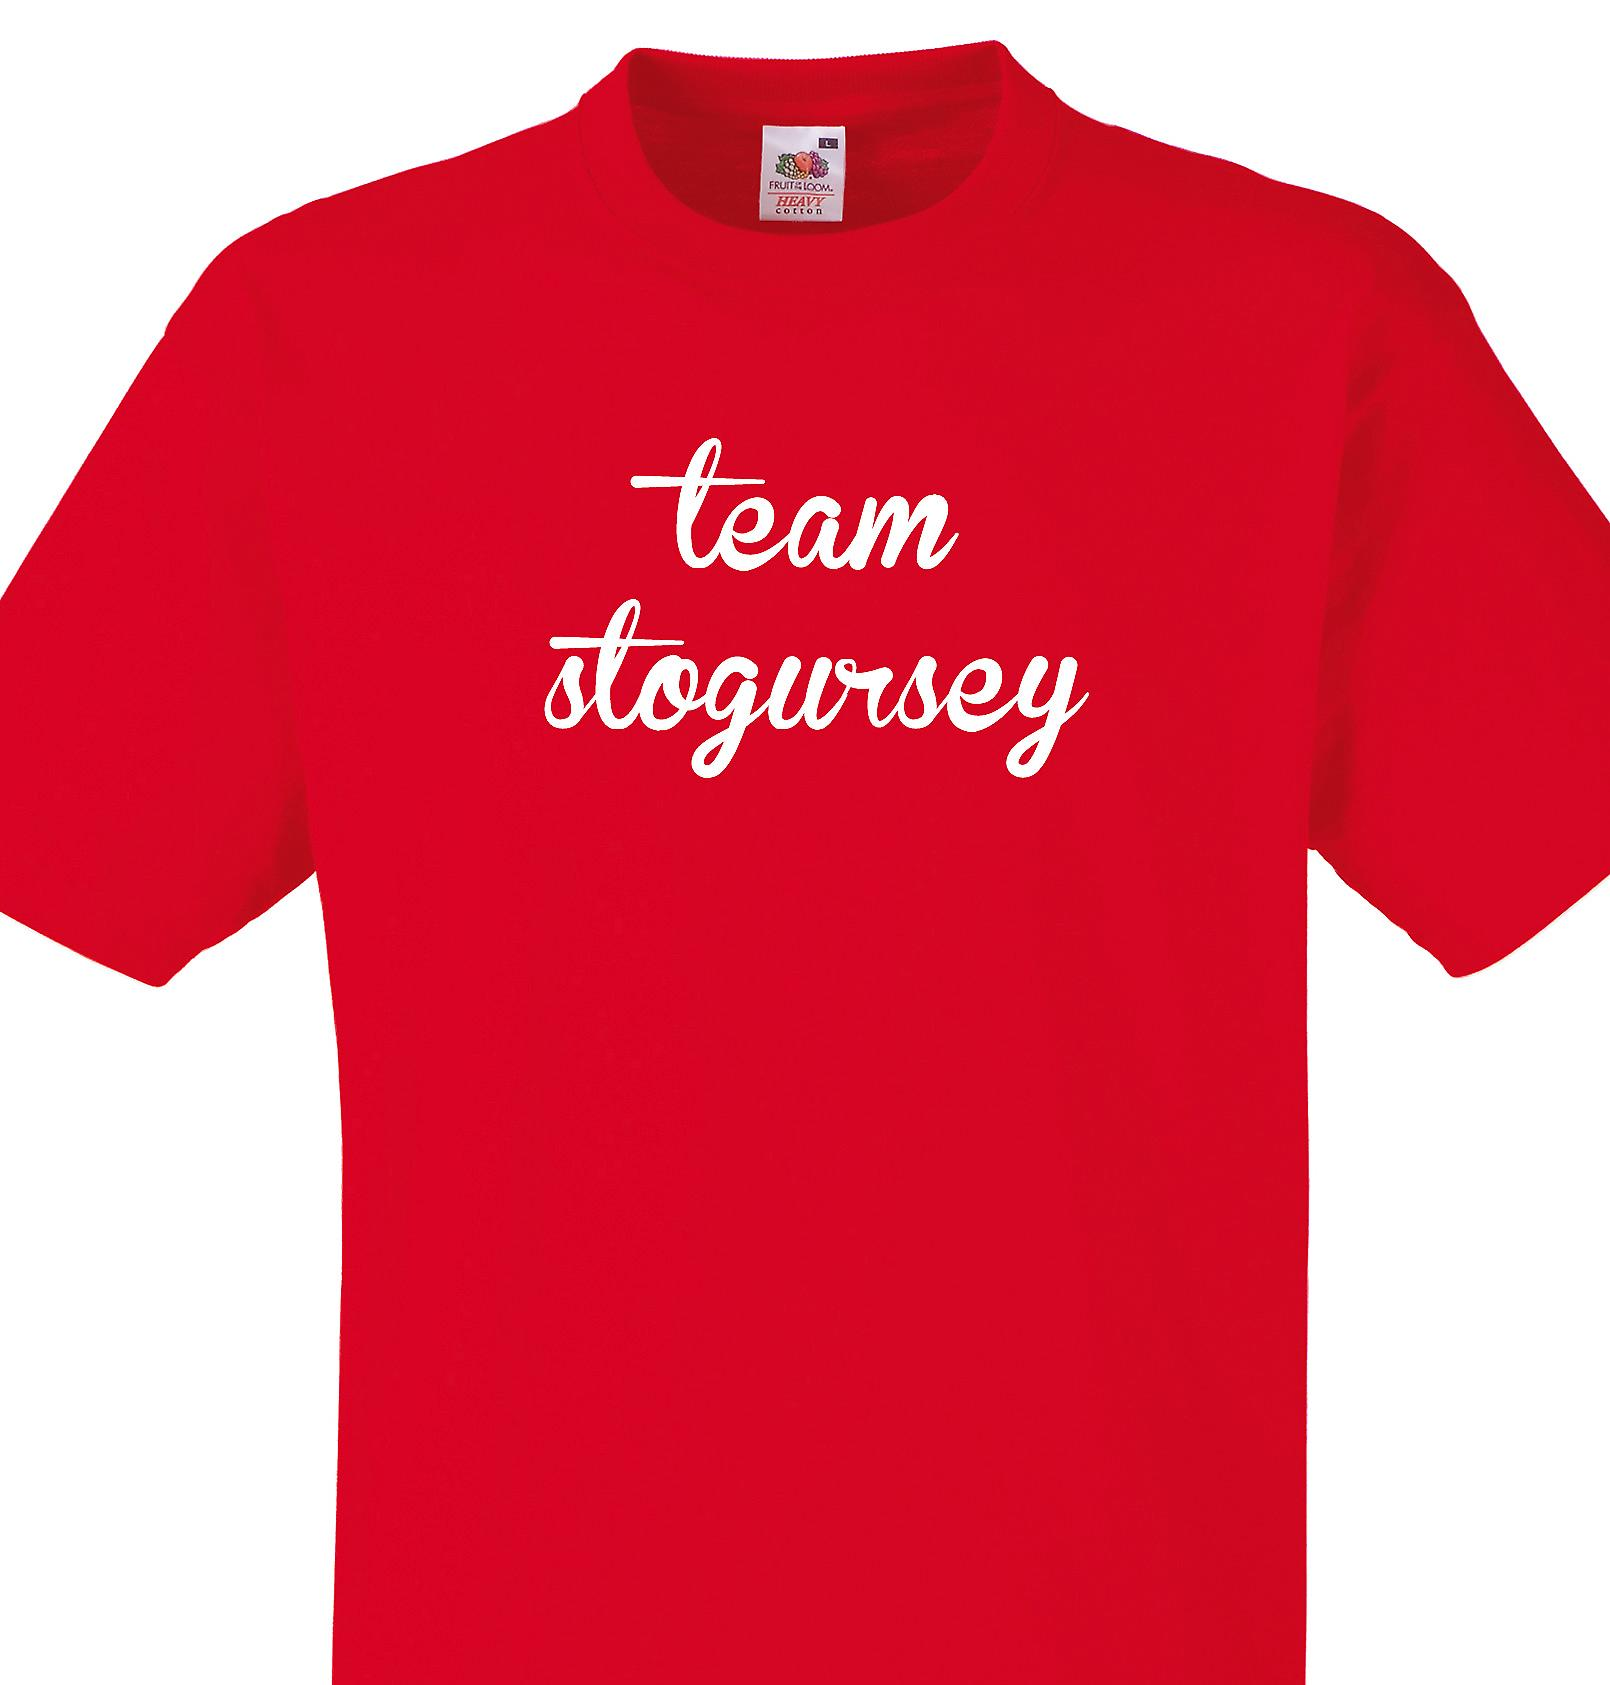 Team Stogursey Red T shirt